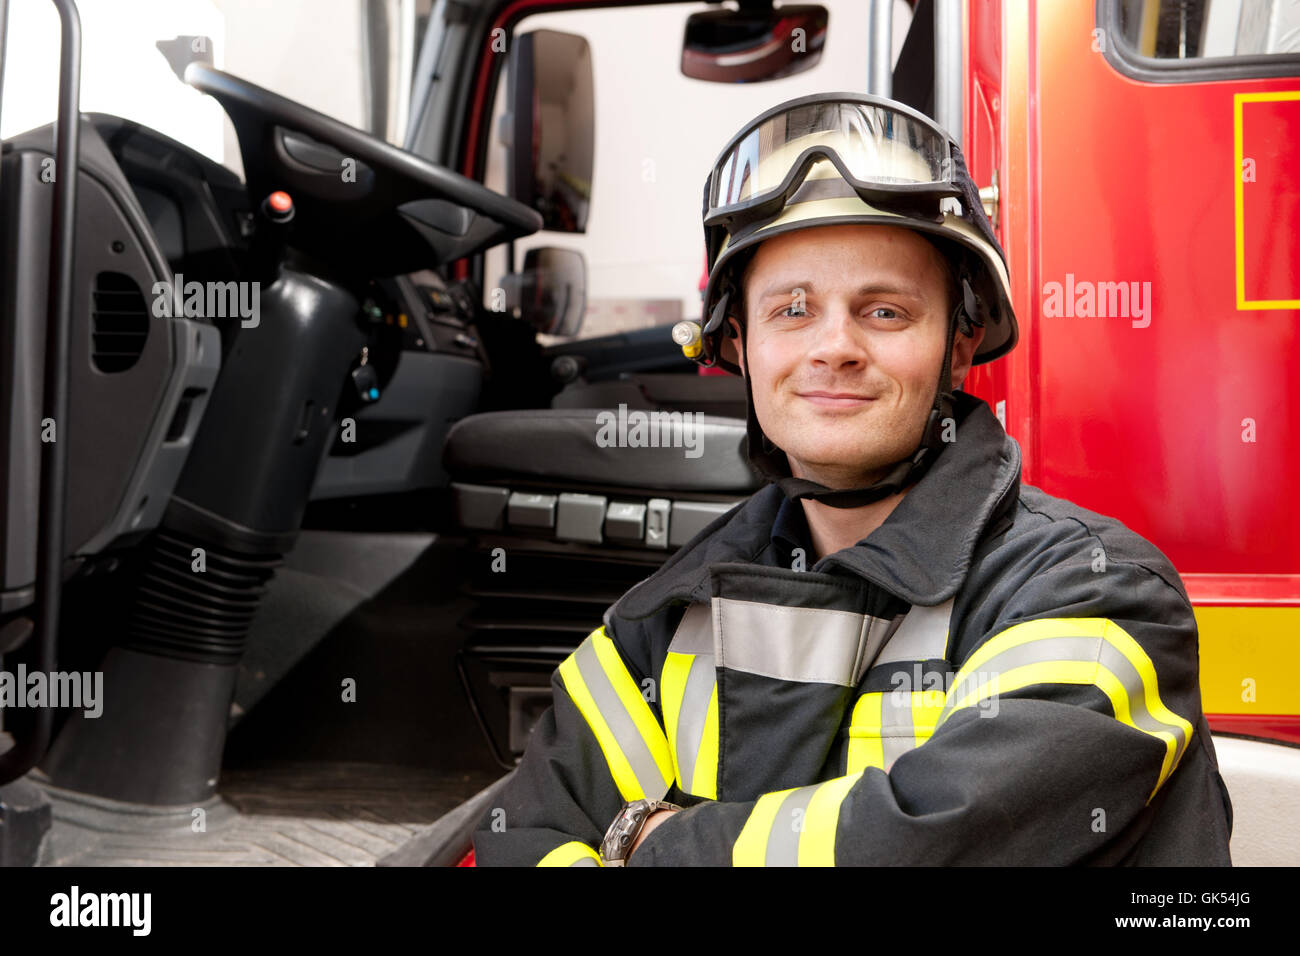 firefighter - Stock Image